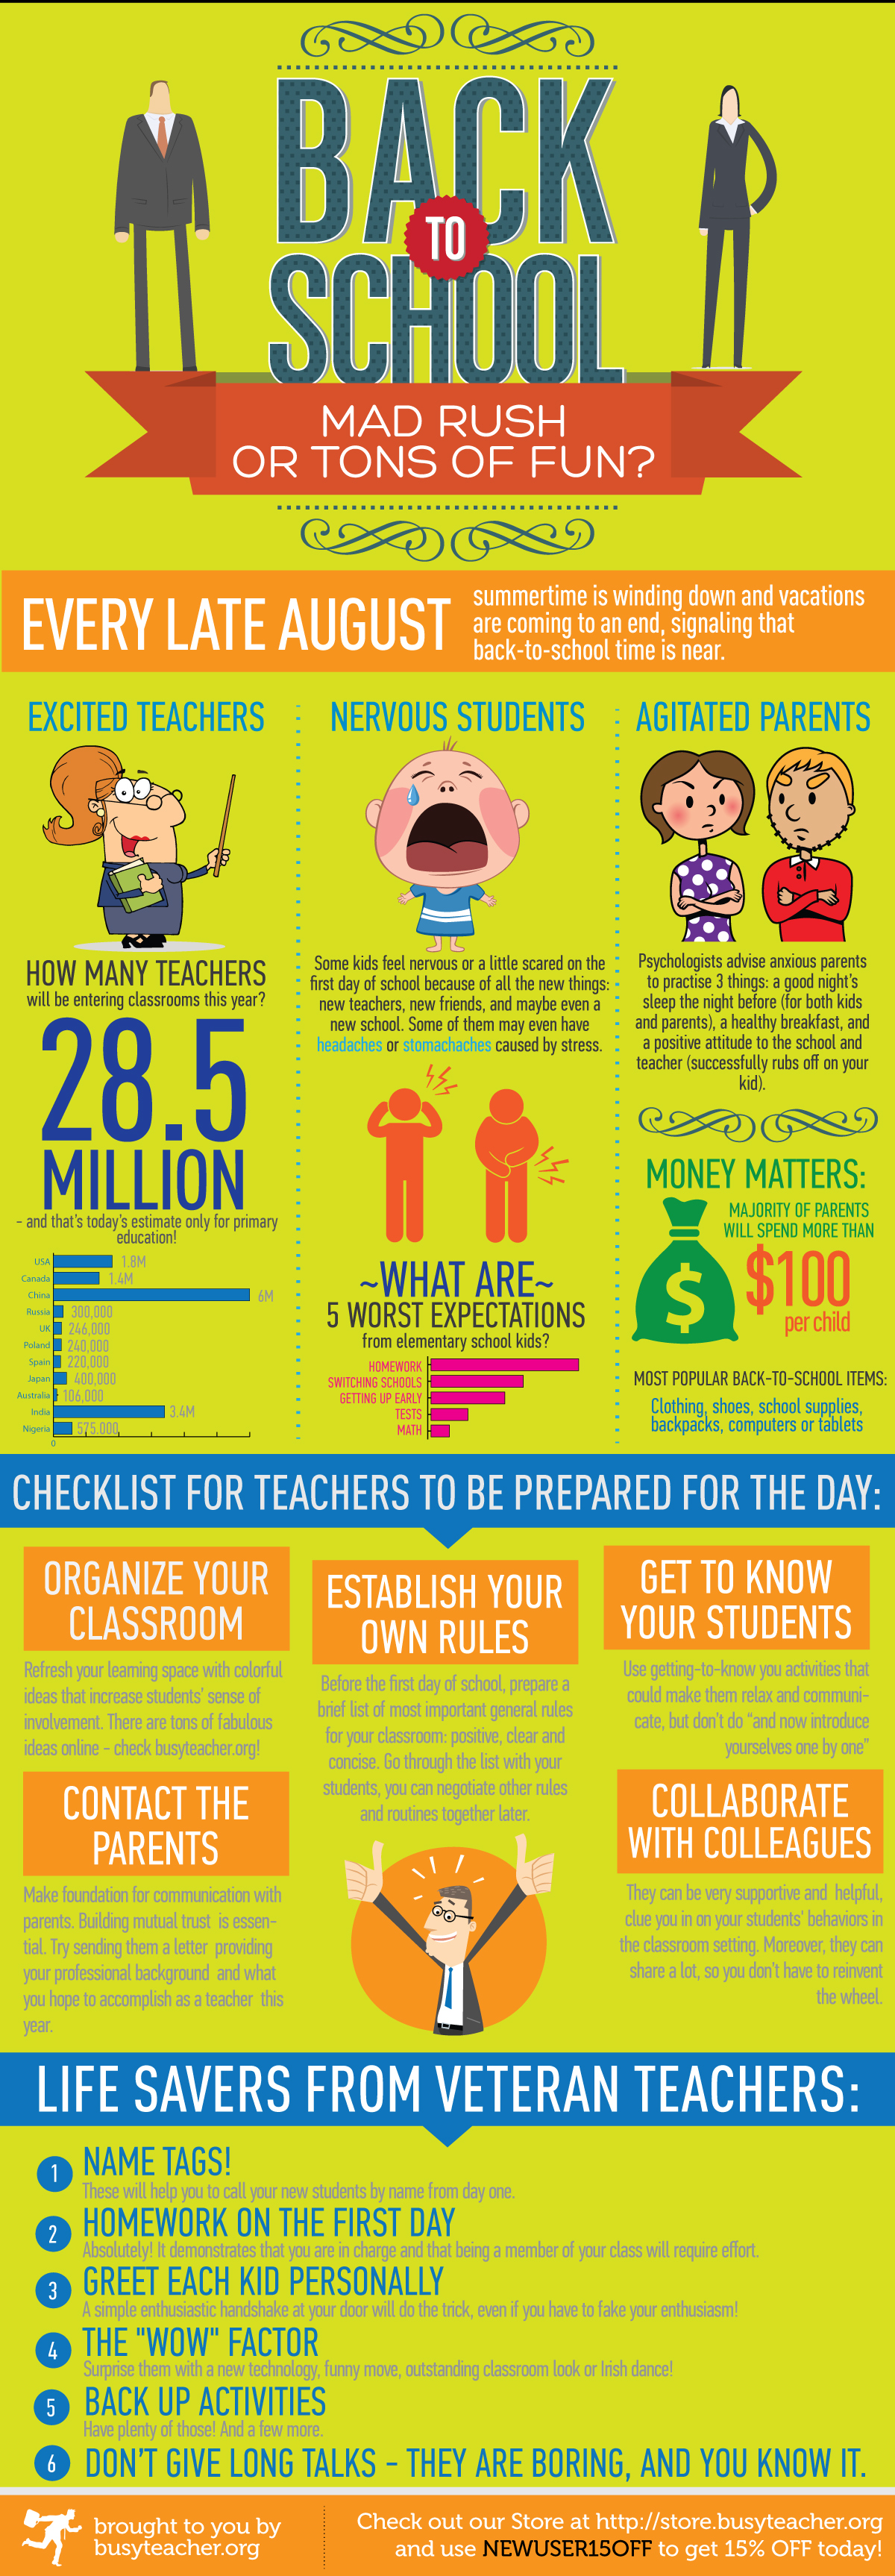 back-to-school-mad-rush-or-tons-of-fun_5212d0029a469